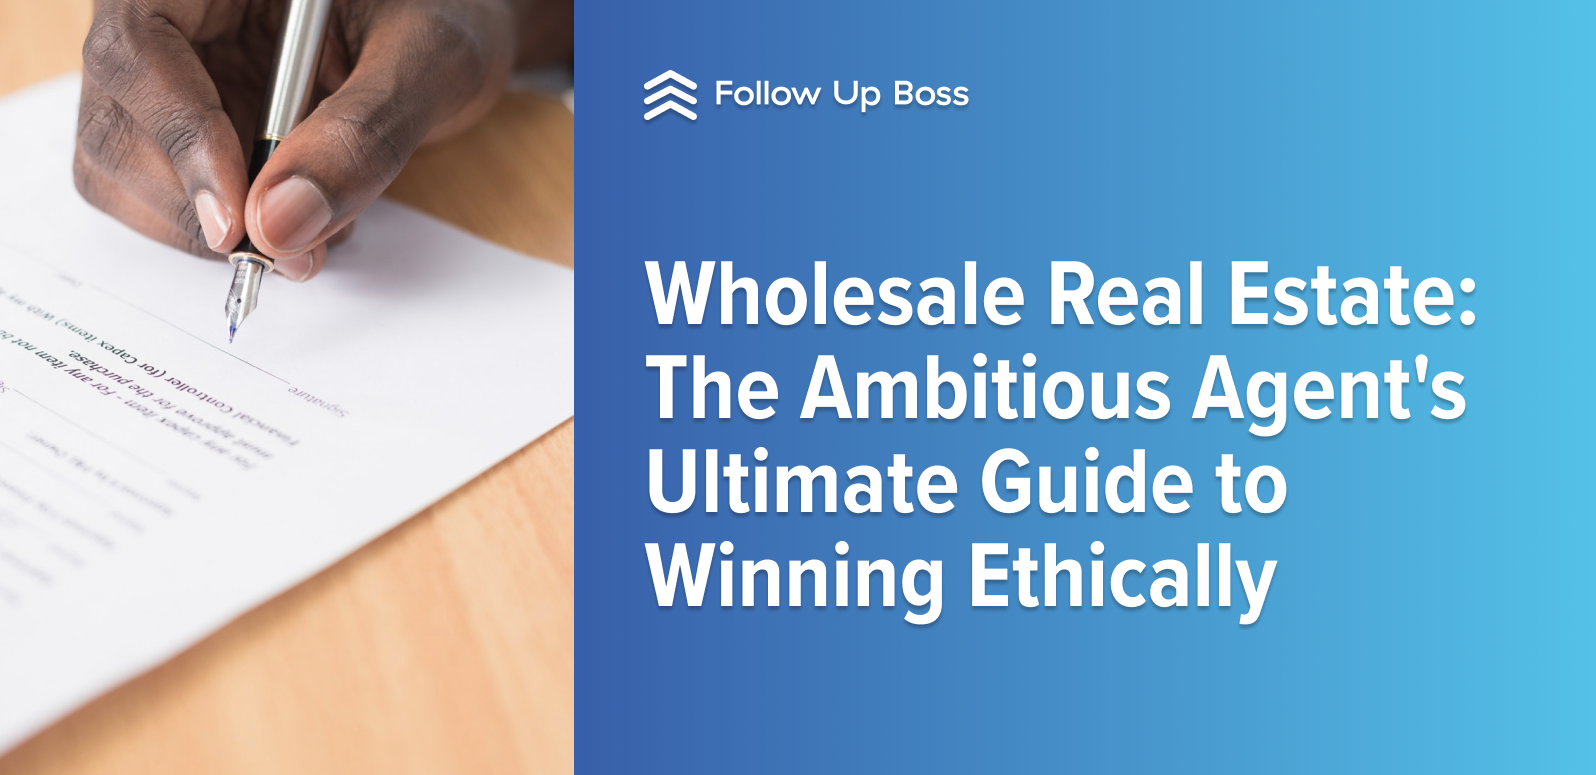 Wholesale Real Estate: The Ambitious Agent's Ultimate Guide